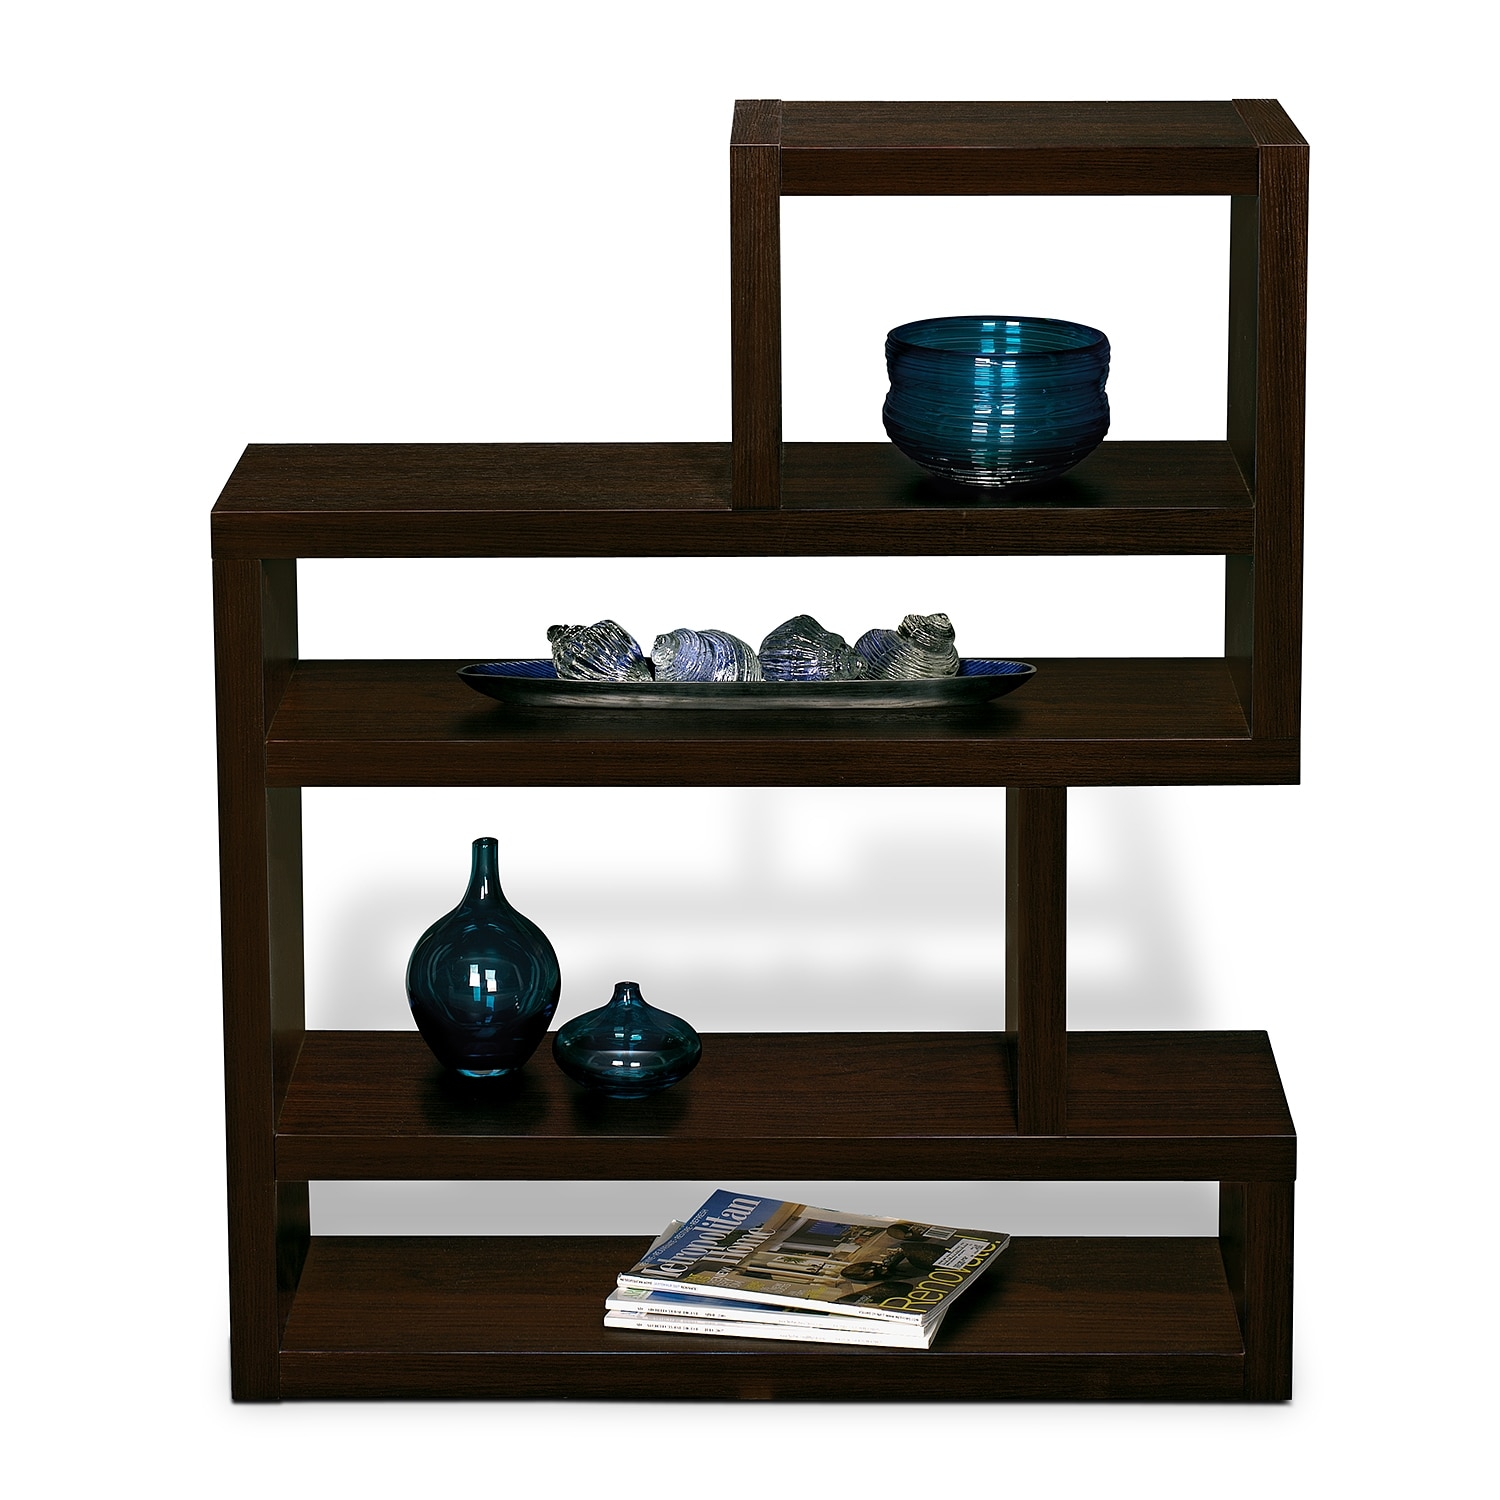 magma accent pieces small bookcase value city furniture small bookcase title=